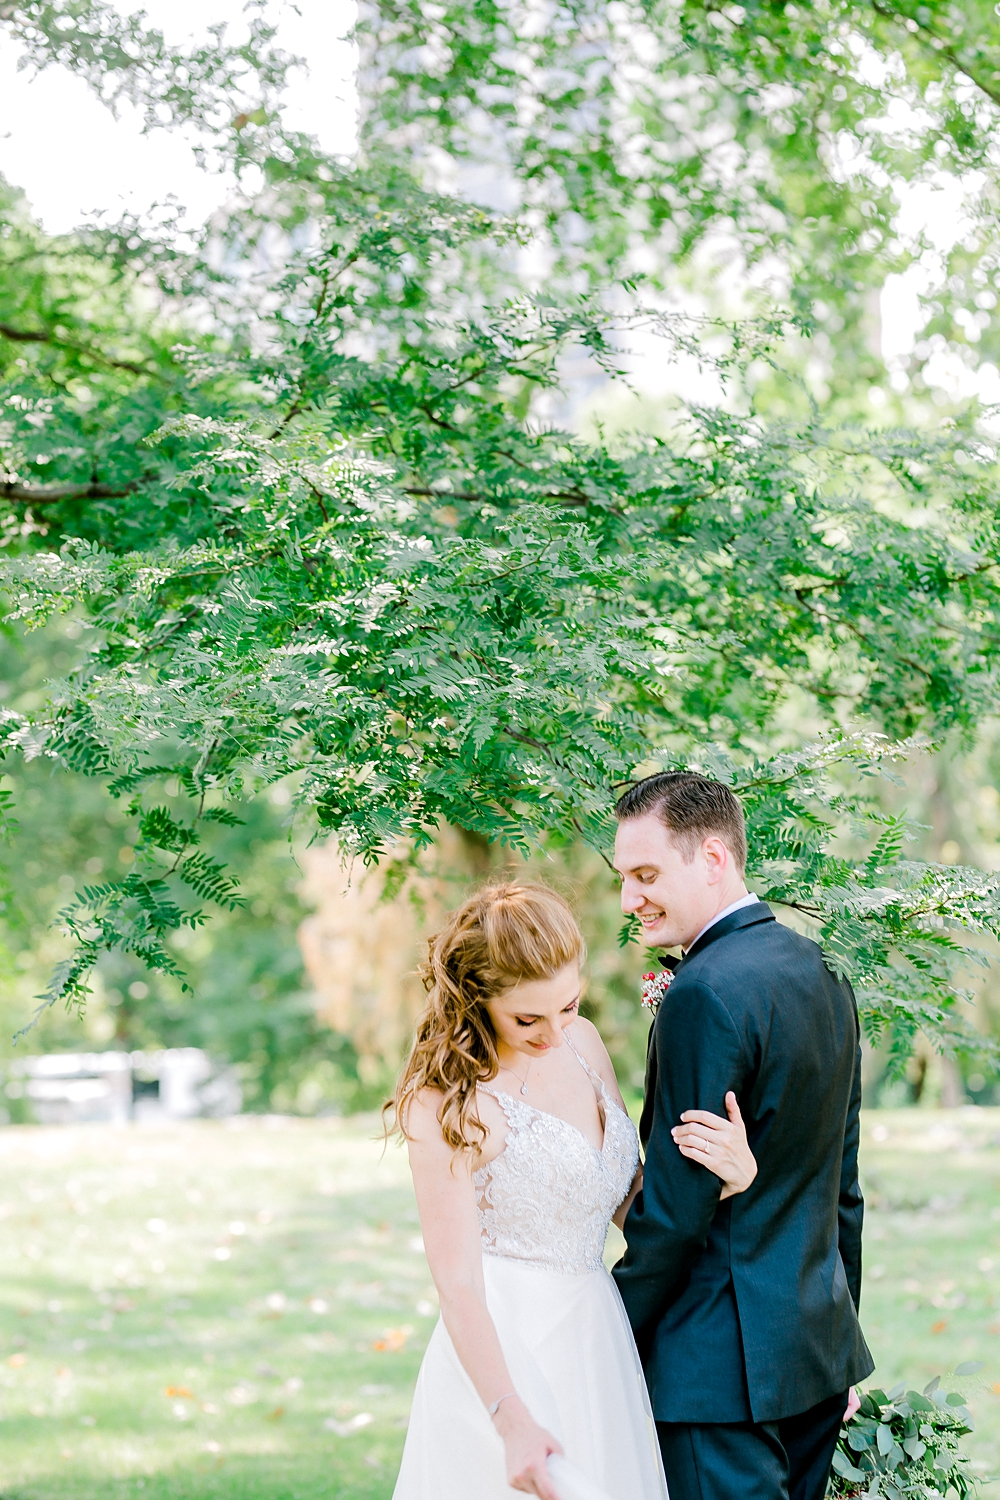 Chicago Wedding Photographer | Check For Price And Availability